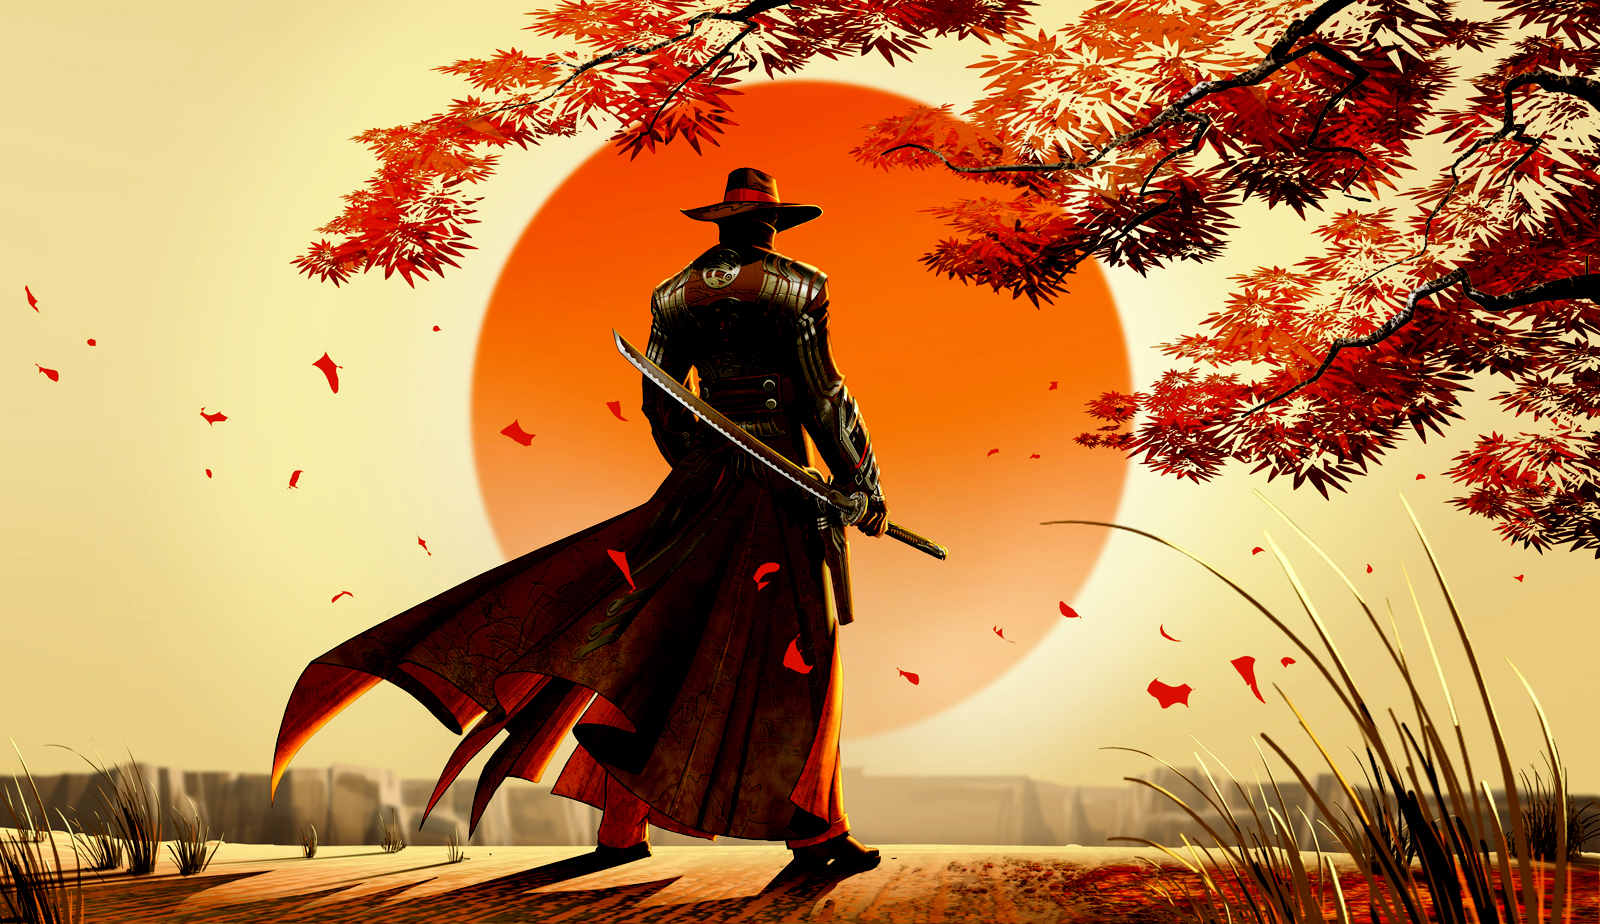 Red Steel 2 Western Samurai Game Wallpapers | Desktop ...